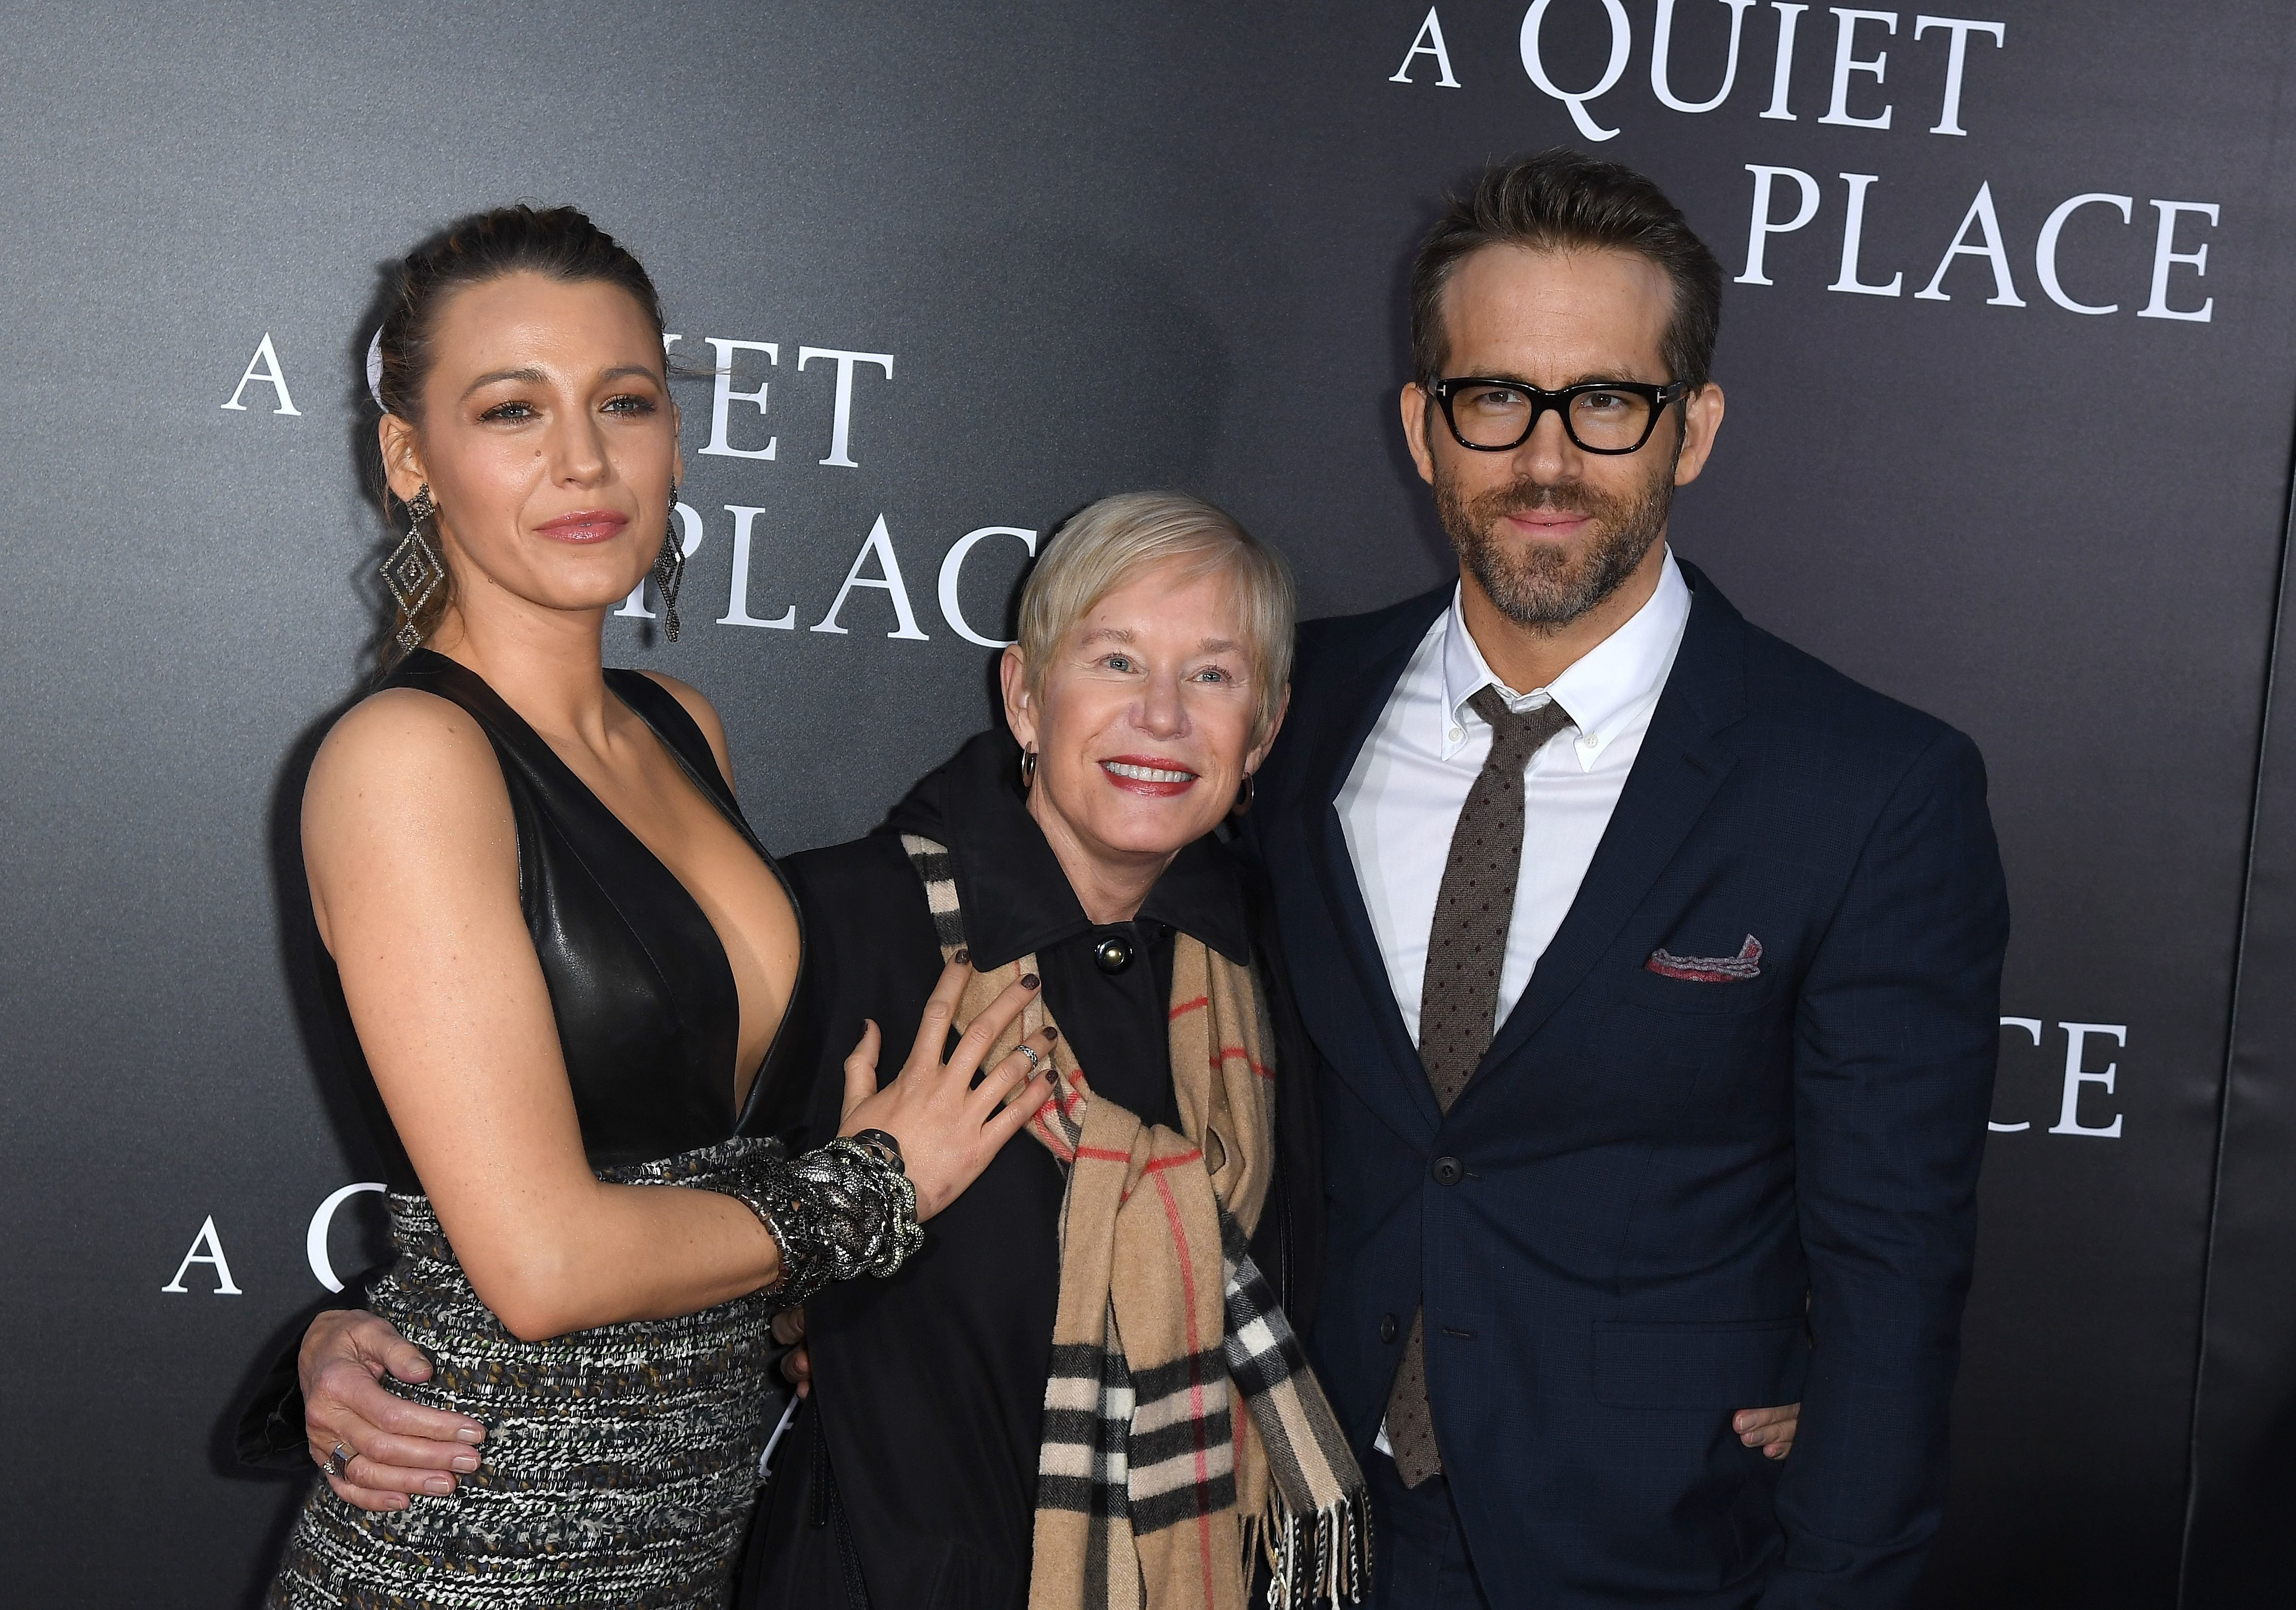 Blake Lively, Tammy Reynolds and Ryan Reynolds attend the Paramount Pictures premiere for 'A Quiet Place' at AMC Lincoln Square Theater on April 2, 2018 in New York City. / AFP PHOTO / ANGELA WEISS        (Photo credit should read ANGELA WEISS/AFP/Getty Images)